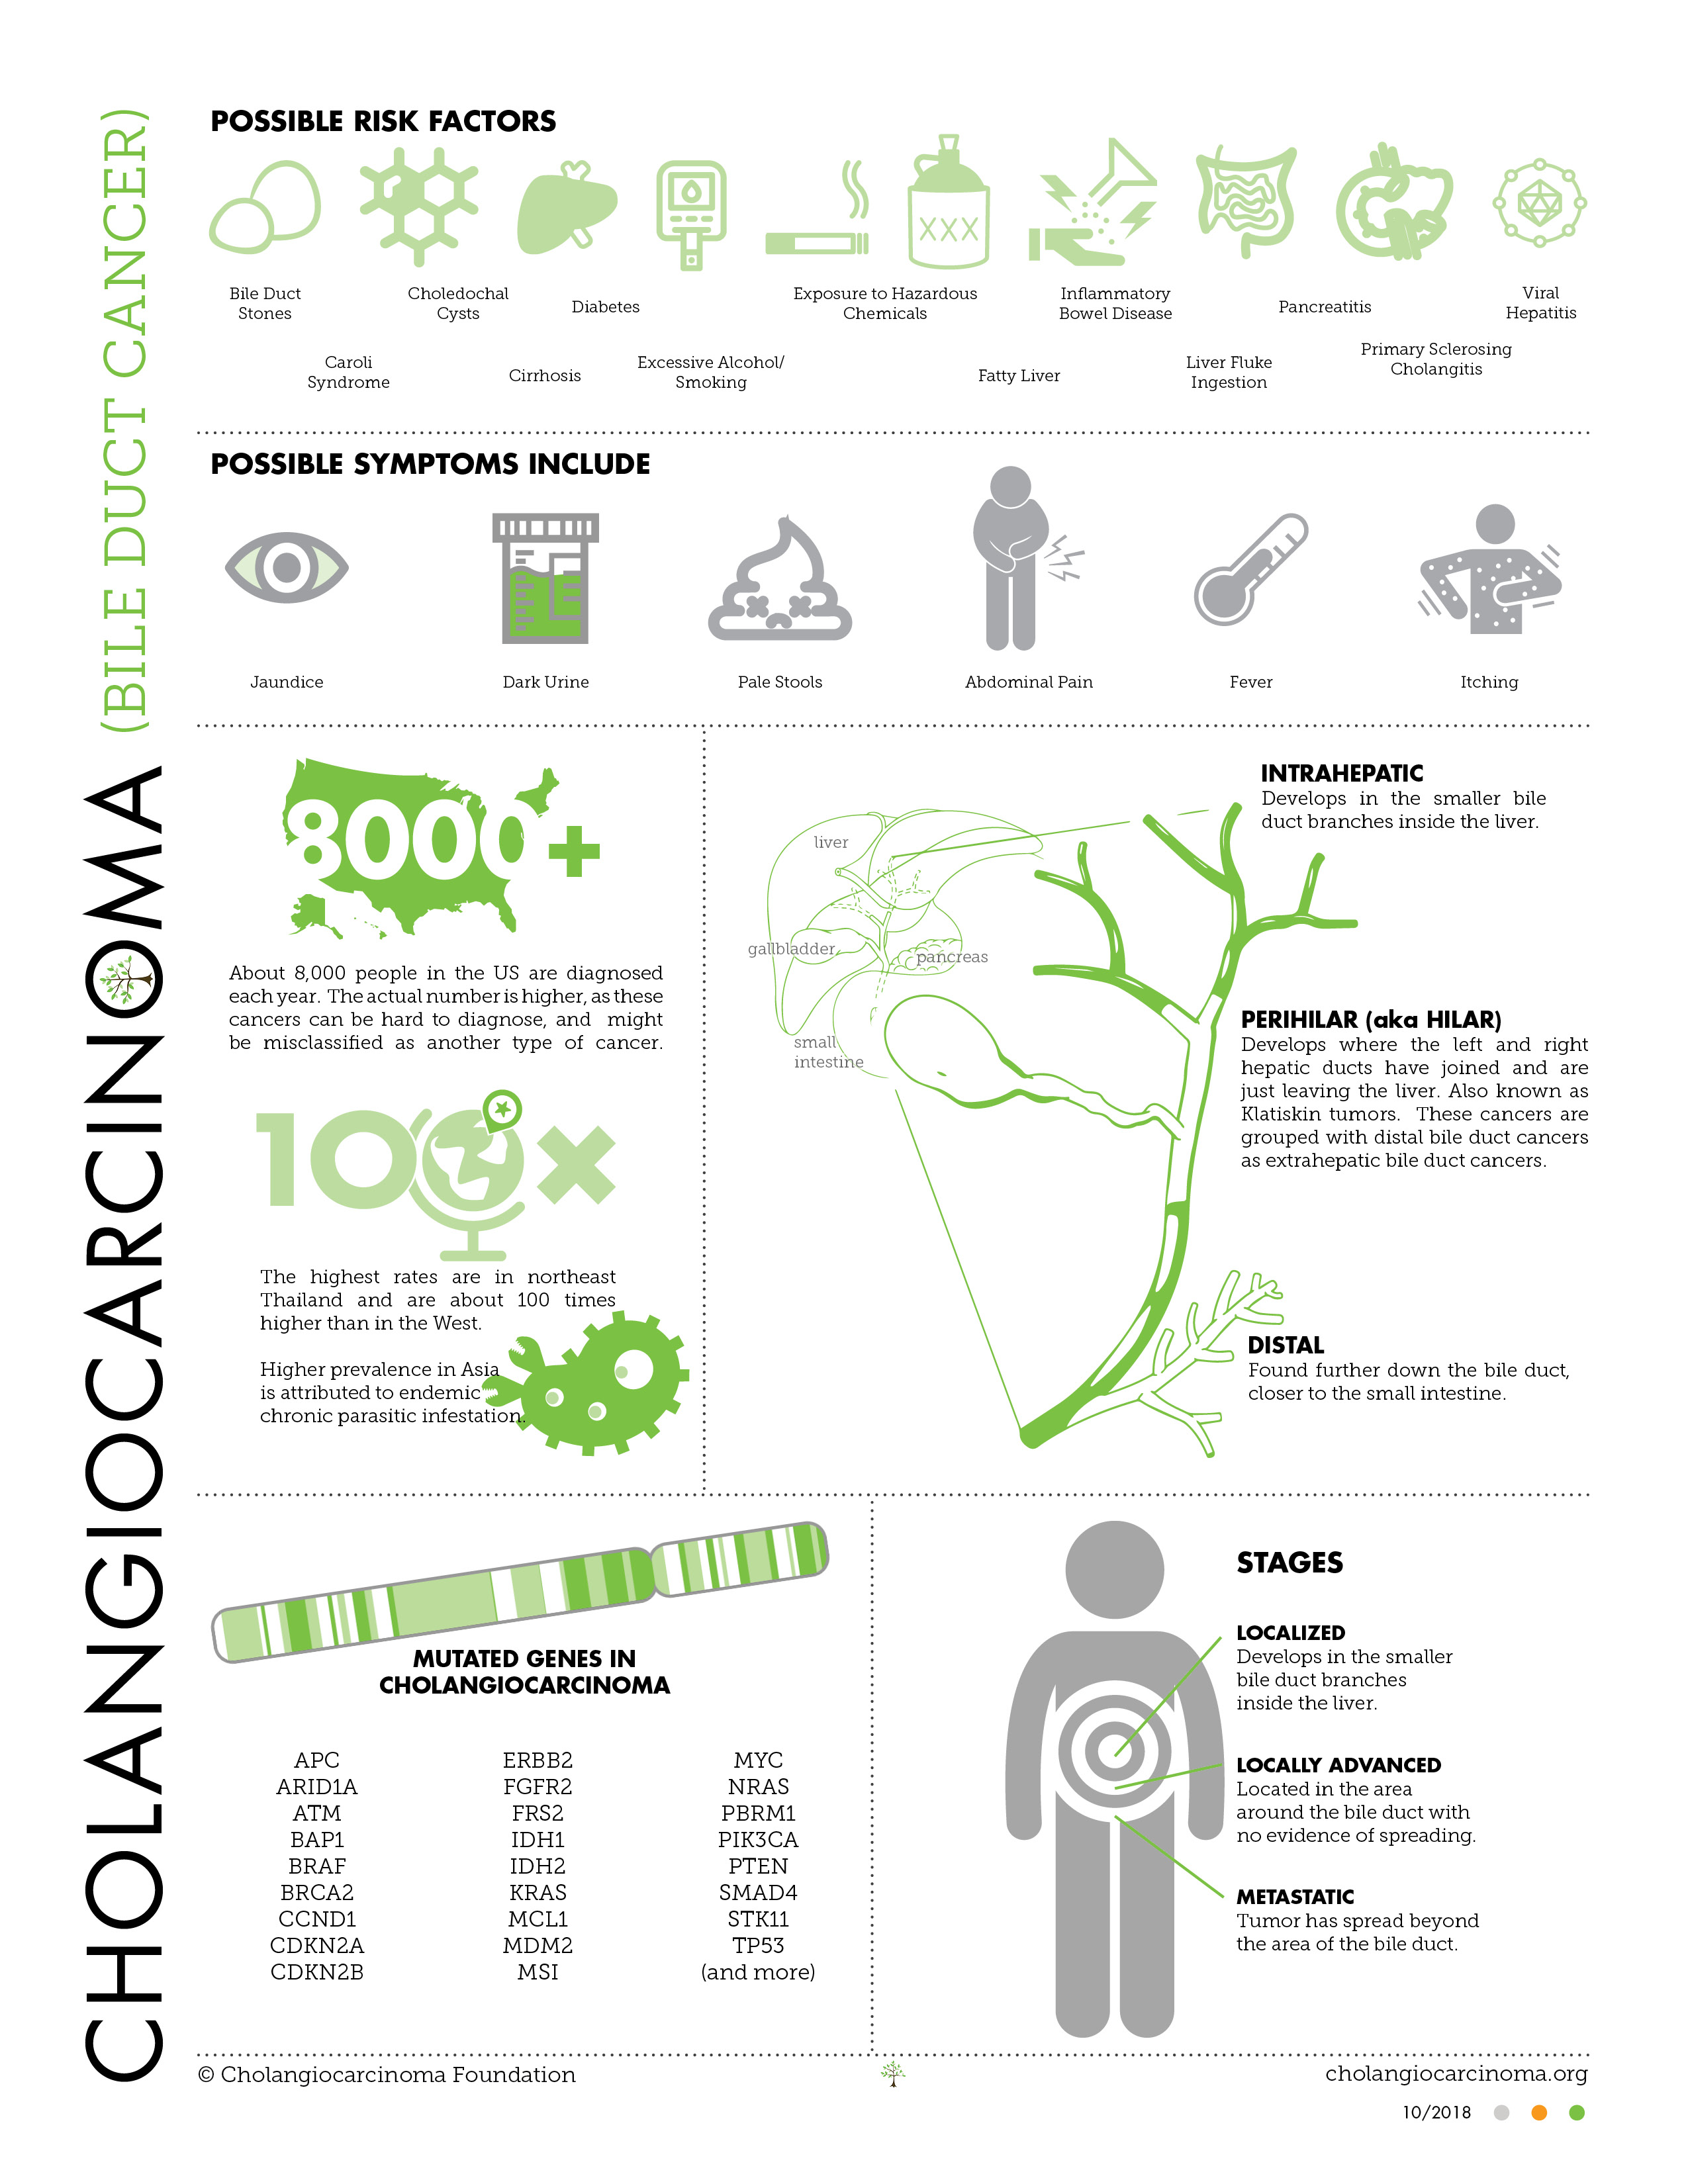 Overview | The Cholangiocarcinoma Foundation